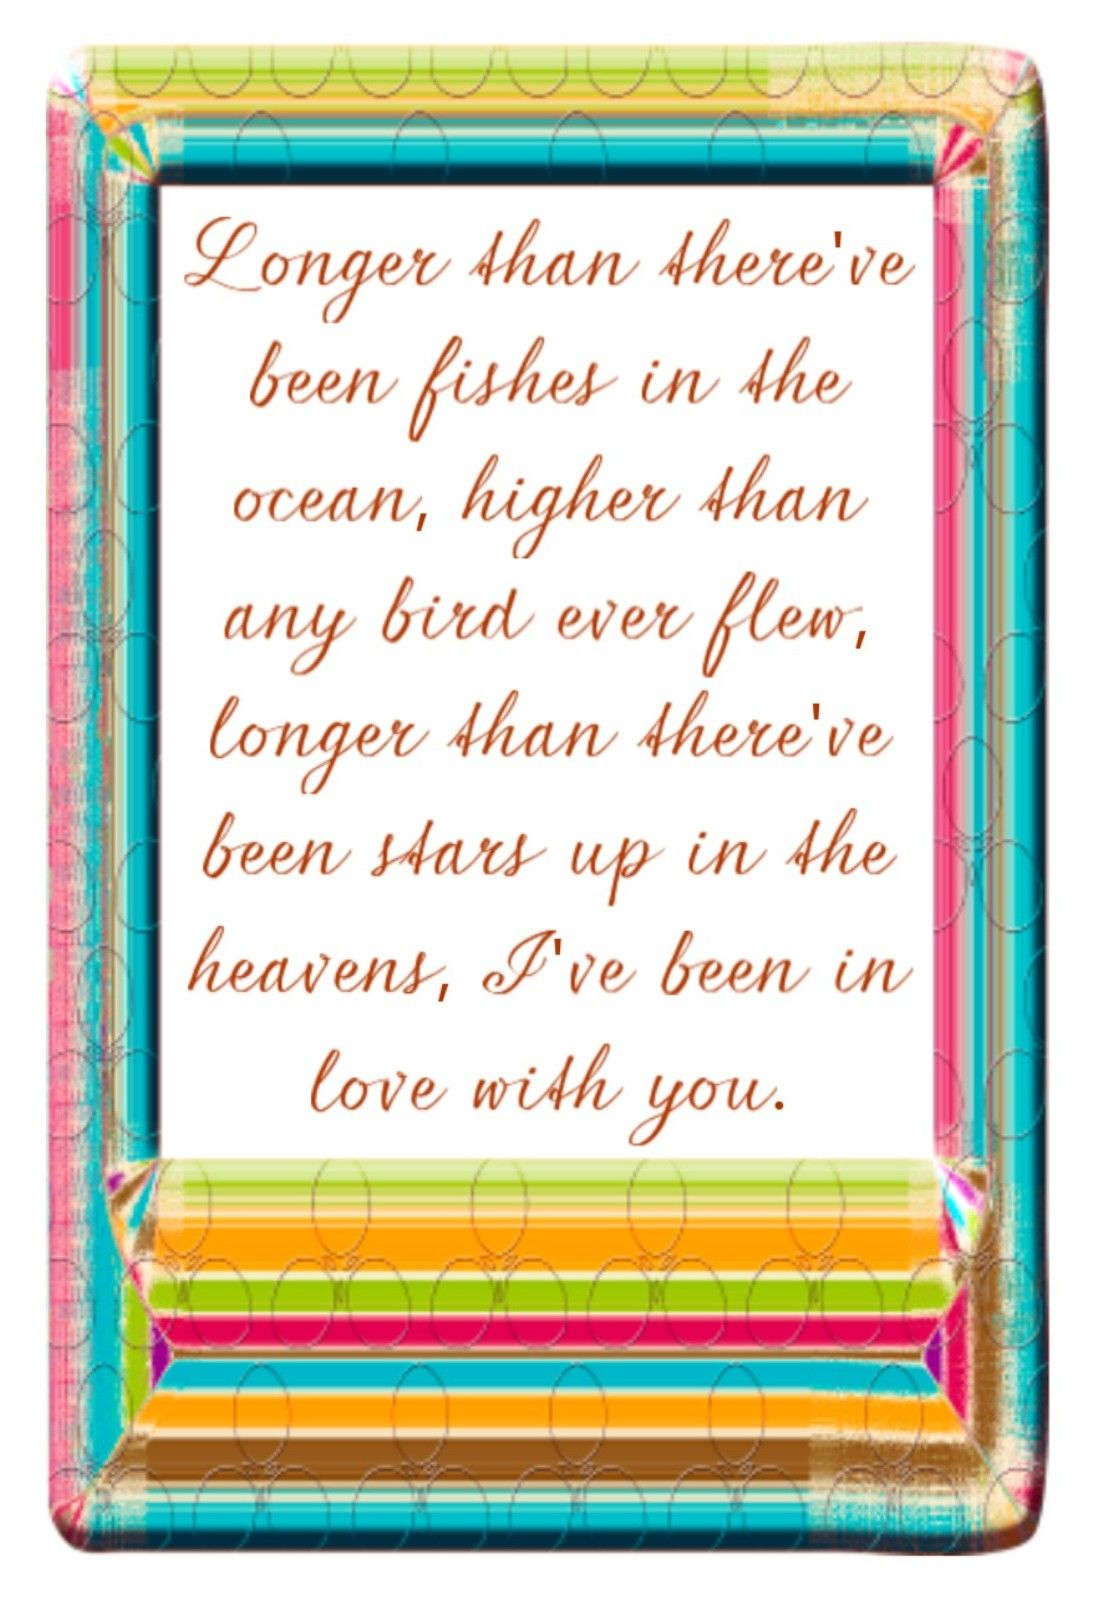 Dan Fogelberg - Longer - LOVE this, it was our wedding song! Rest In peace, dear Dan, we all thank you for the music!